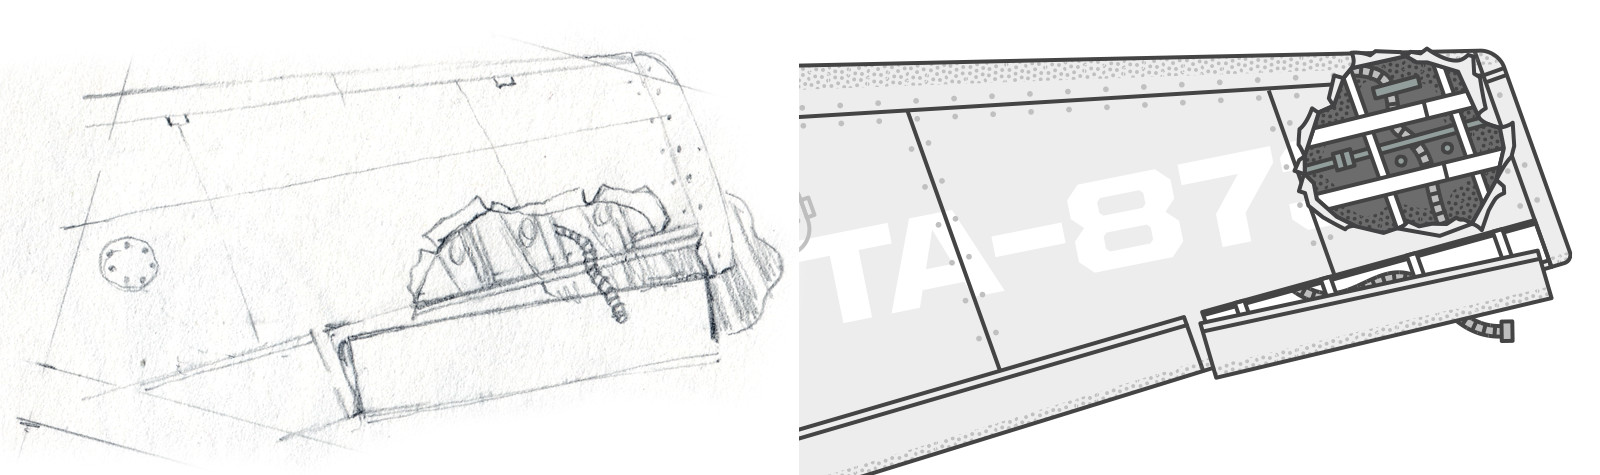 sketch and final version of plane wing wreckage